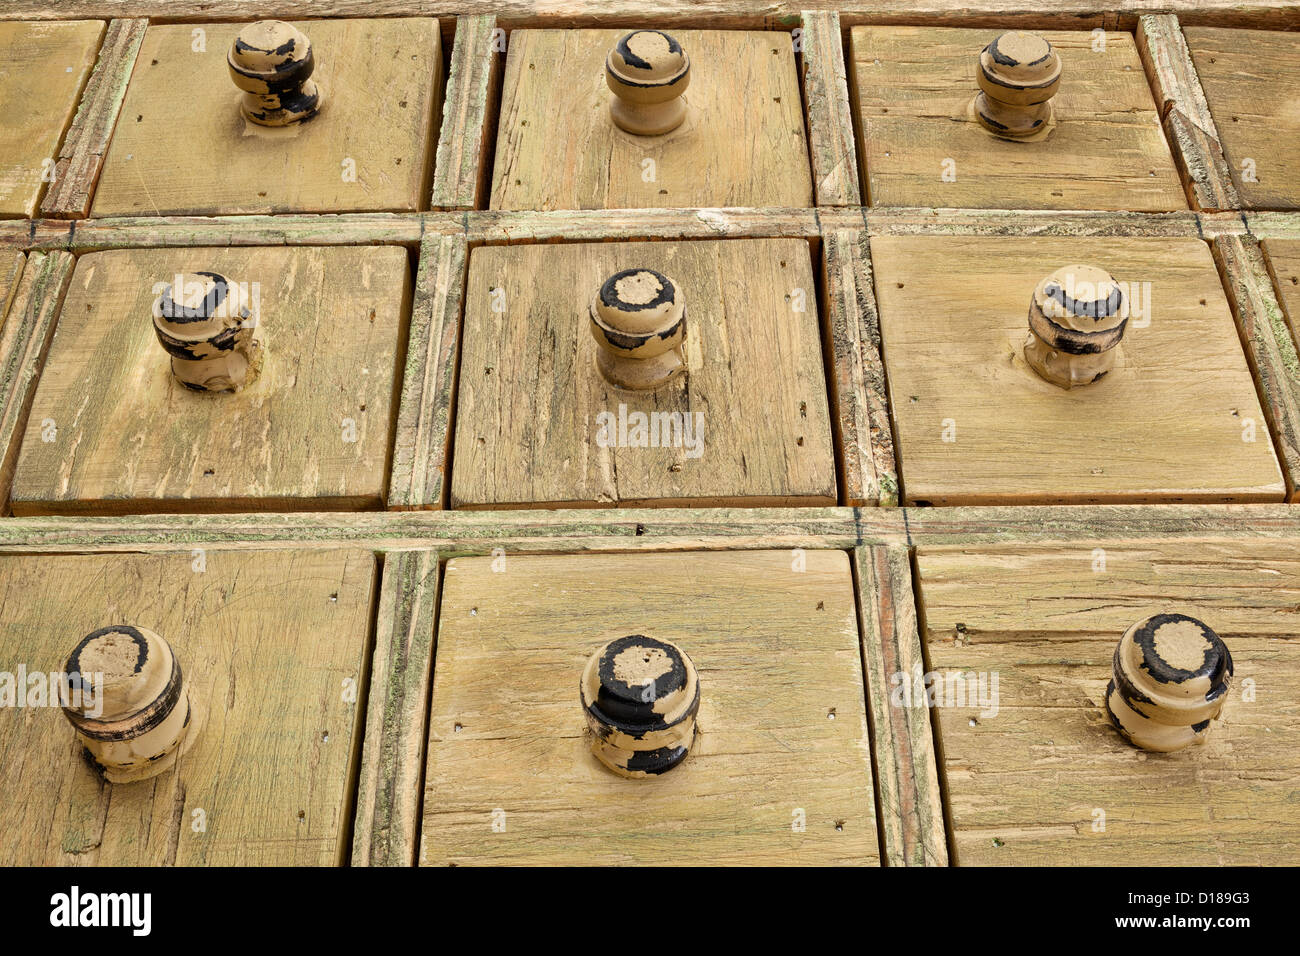 primitive wooden apothecary or catalog drawer cabinet, low view angle - Stock Image